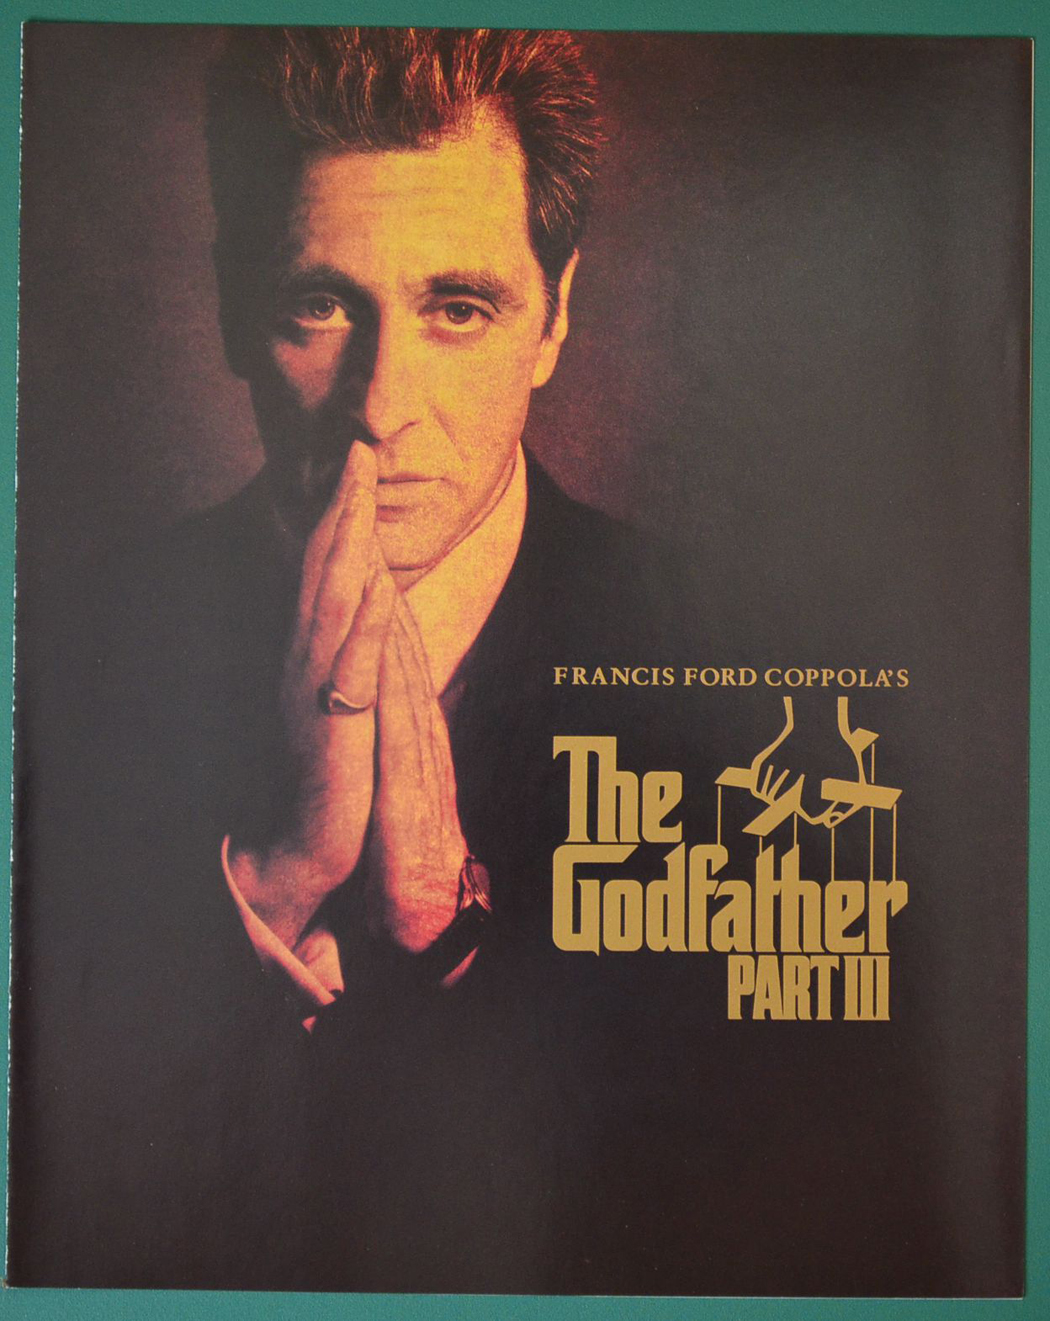 the godfather a synopsis The godfather author mario puzo country united states language english genre  the plot deals with a mob war fought between the corleone family and the.